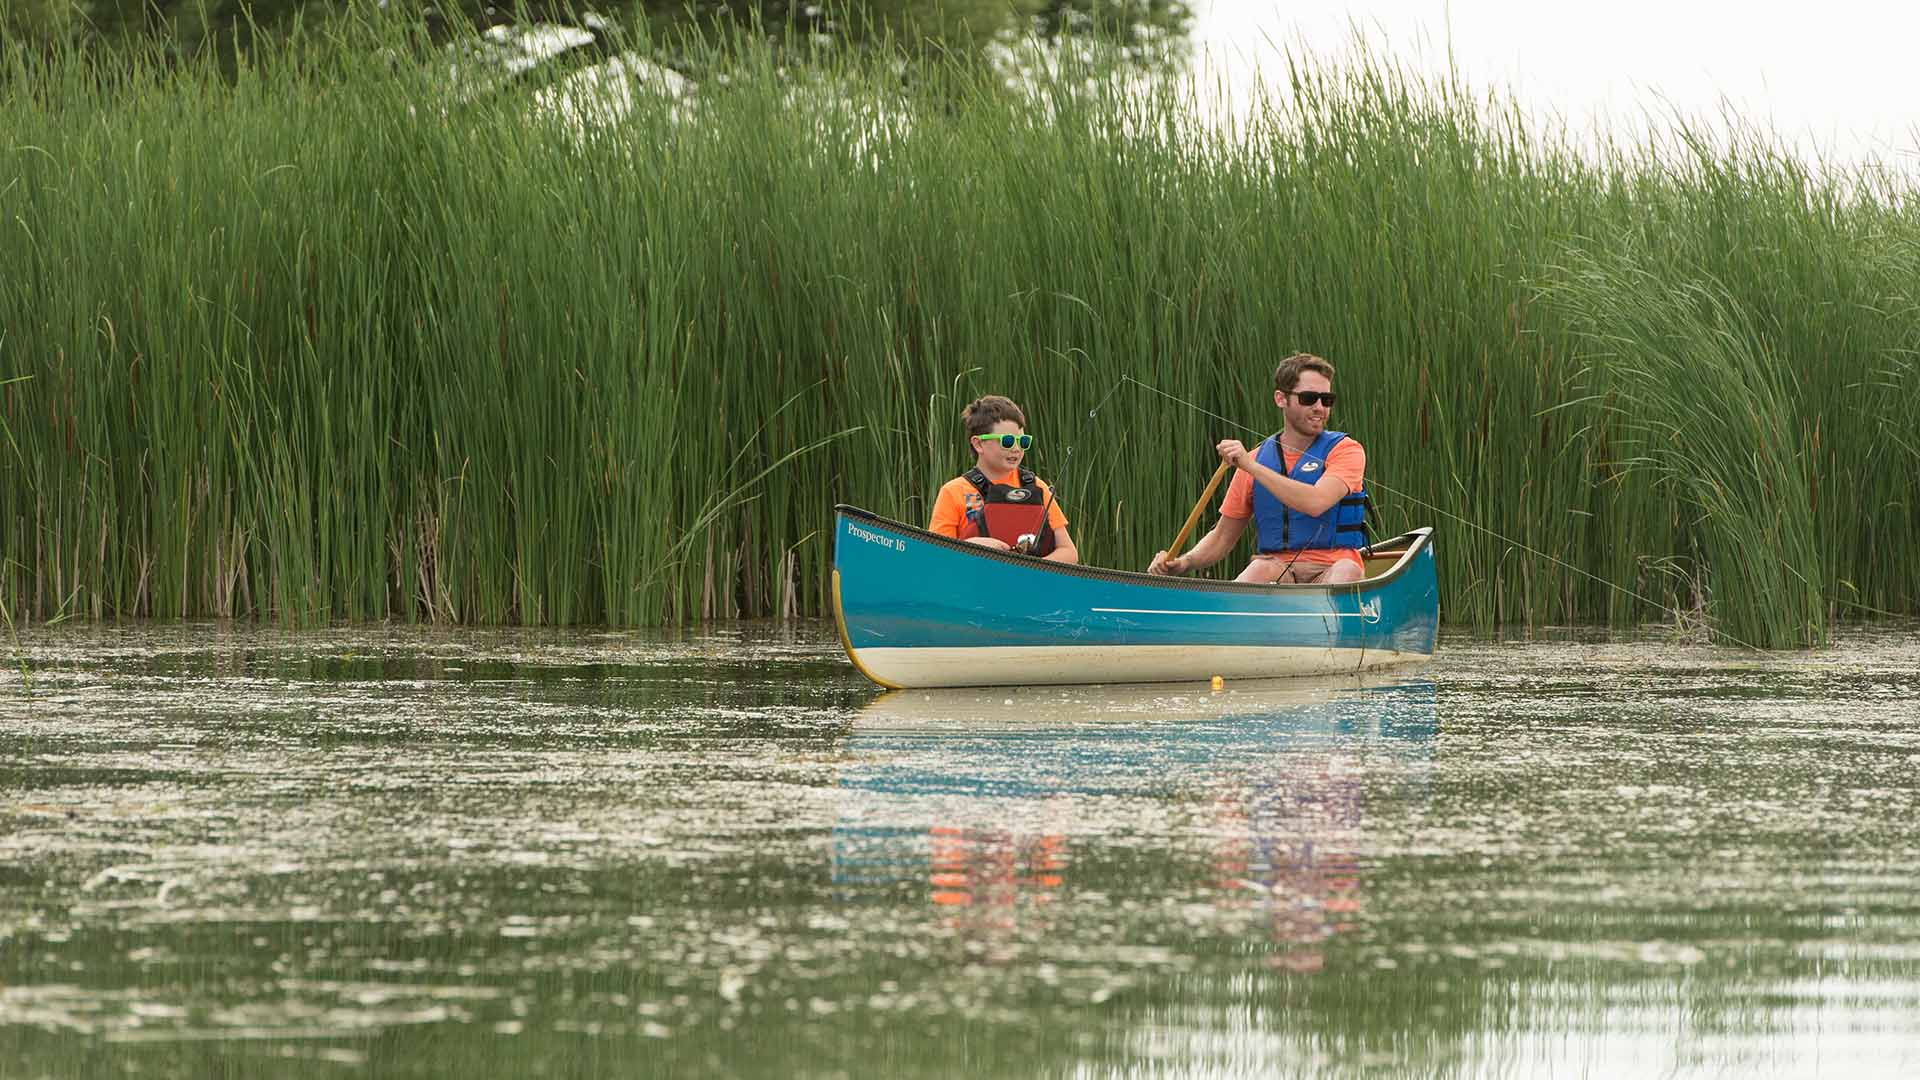 Maclean lake - 10 Amazing Paddle Routes in Ontario's Lake Country